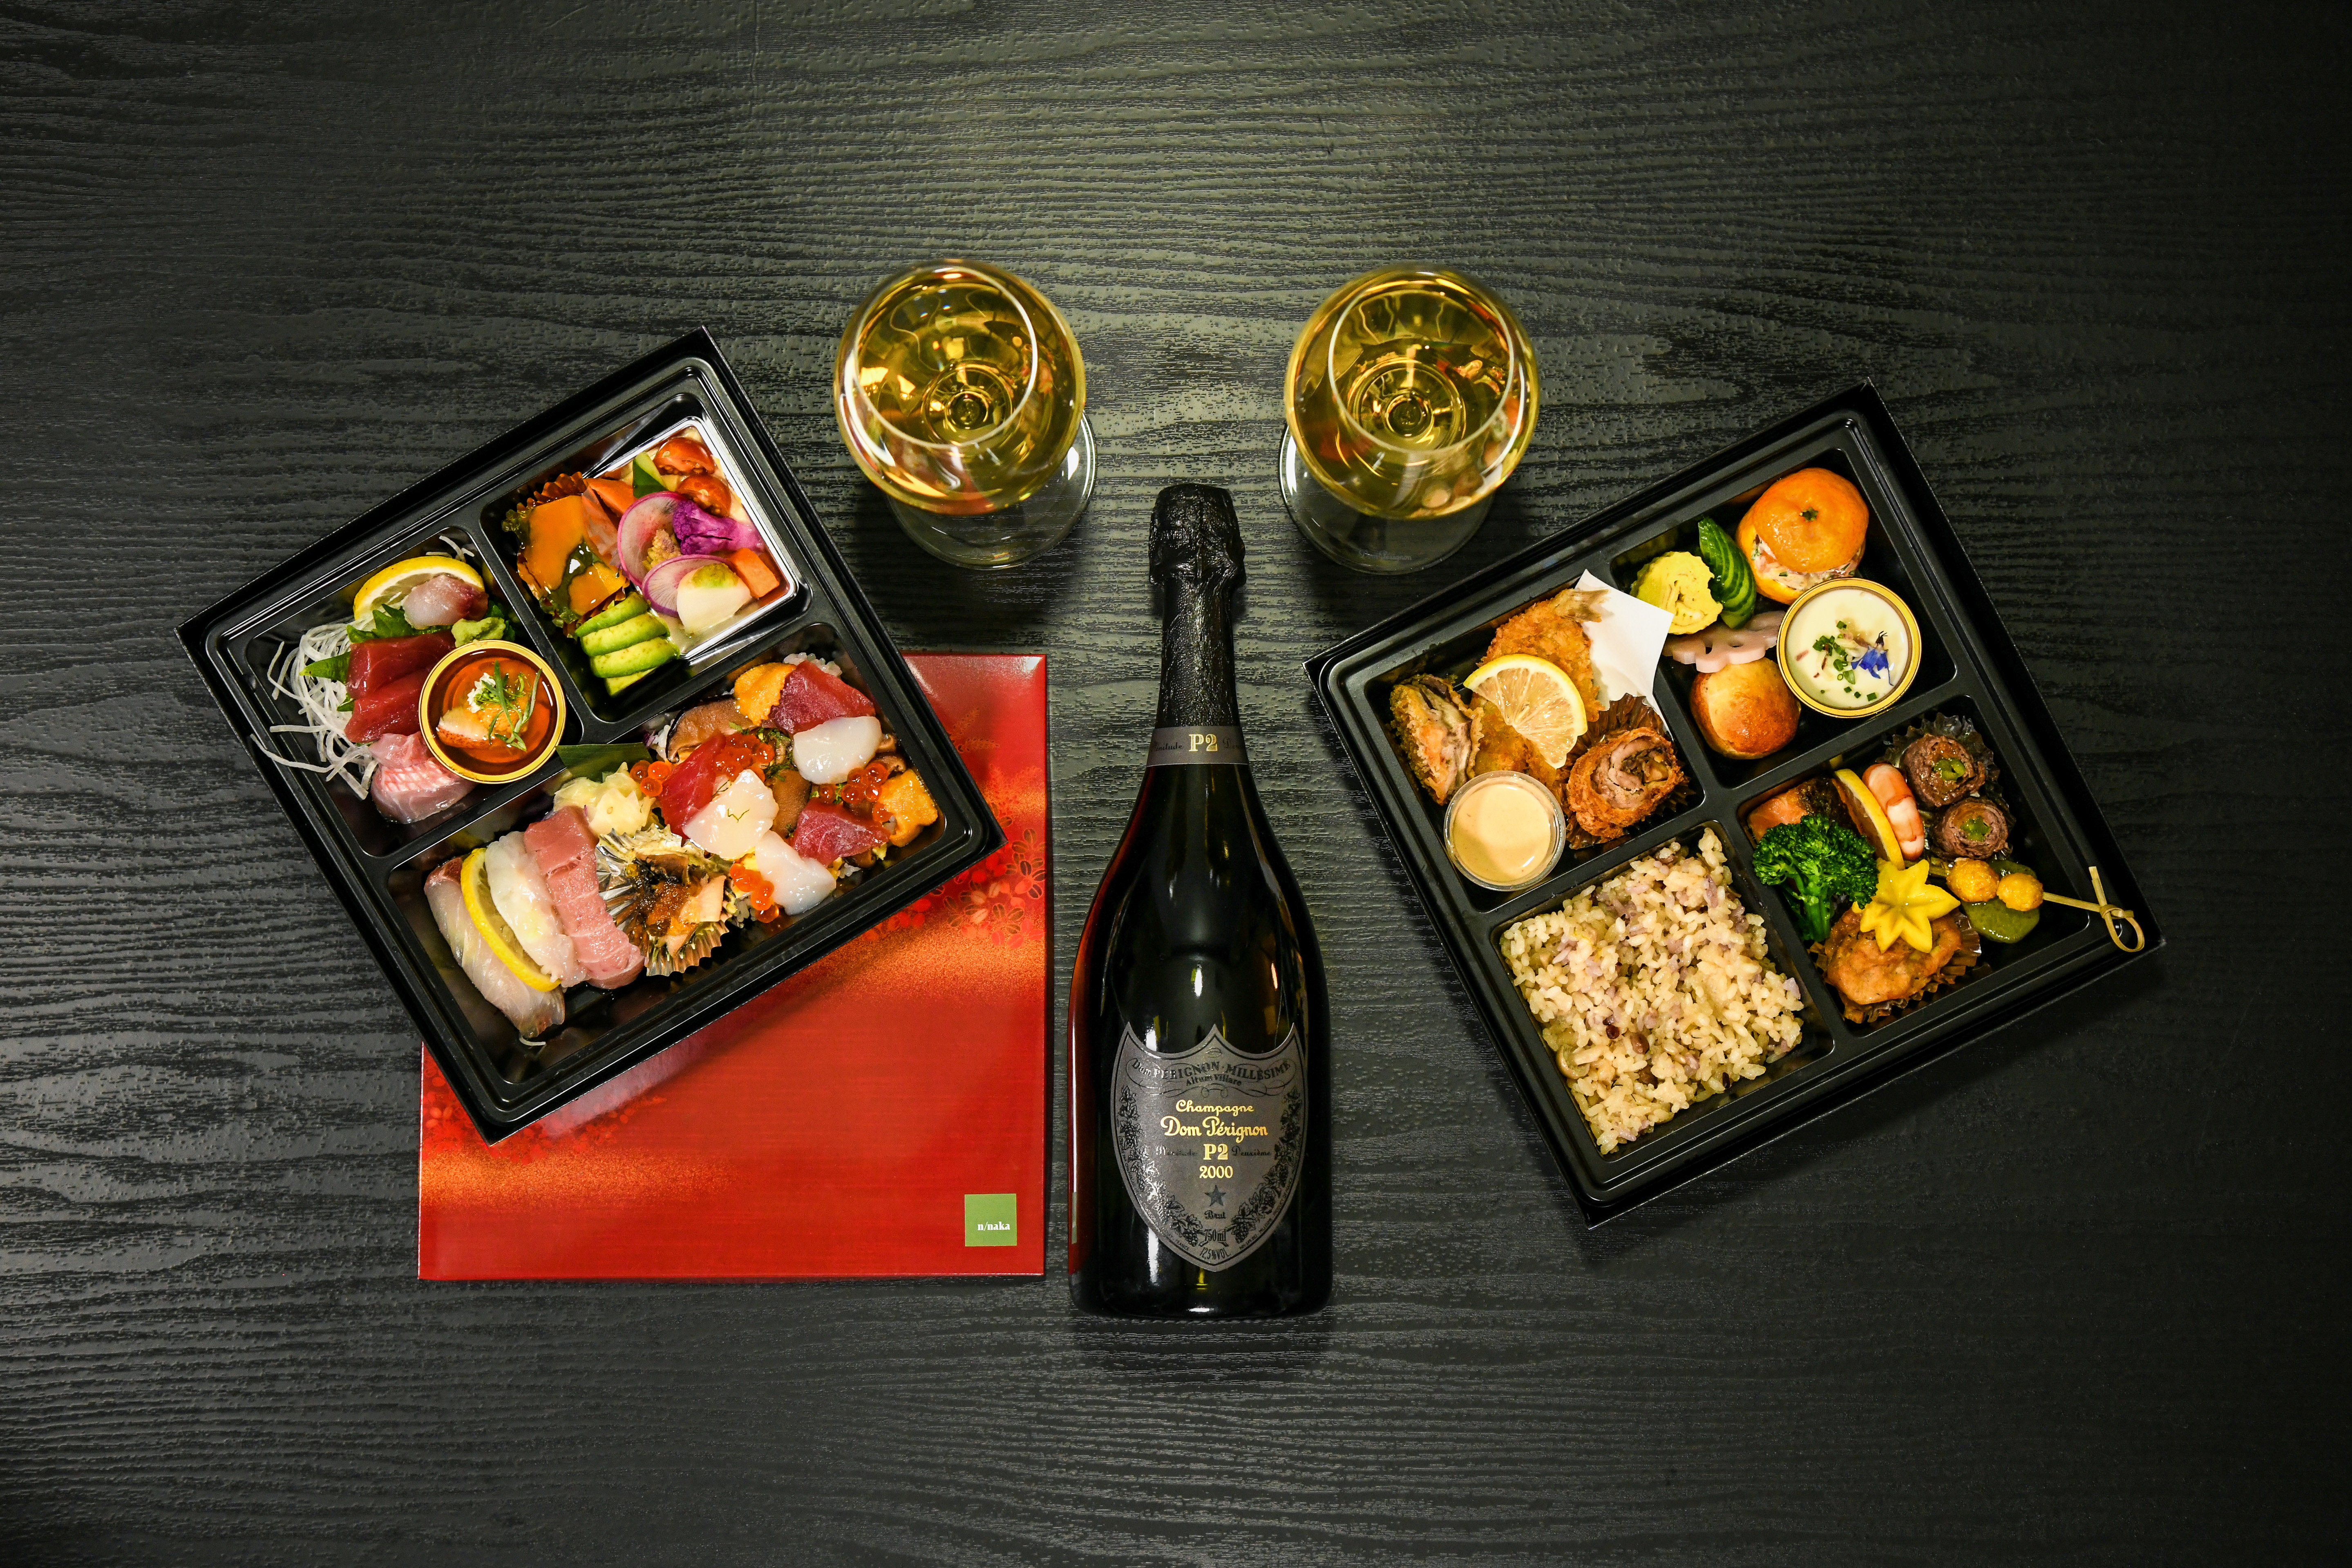 Celebrate the holiday season with bento boxes from n/naka.